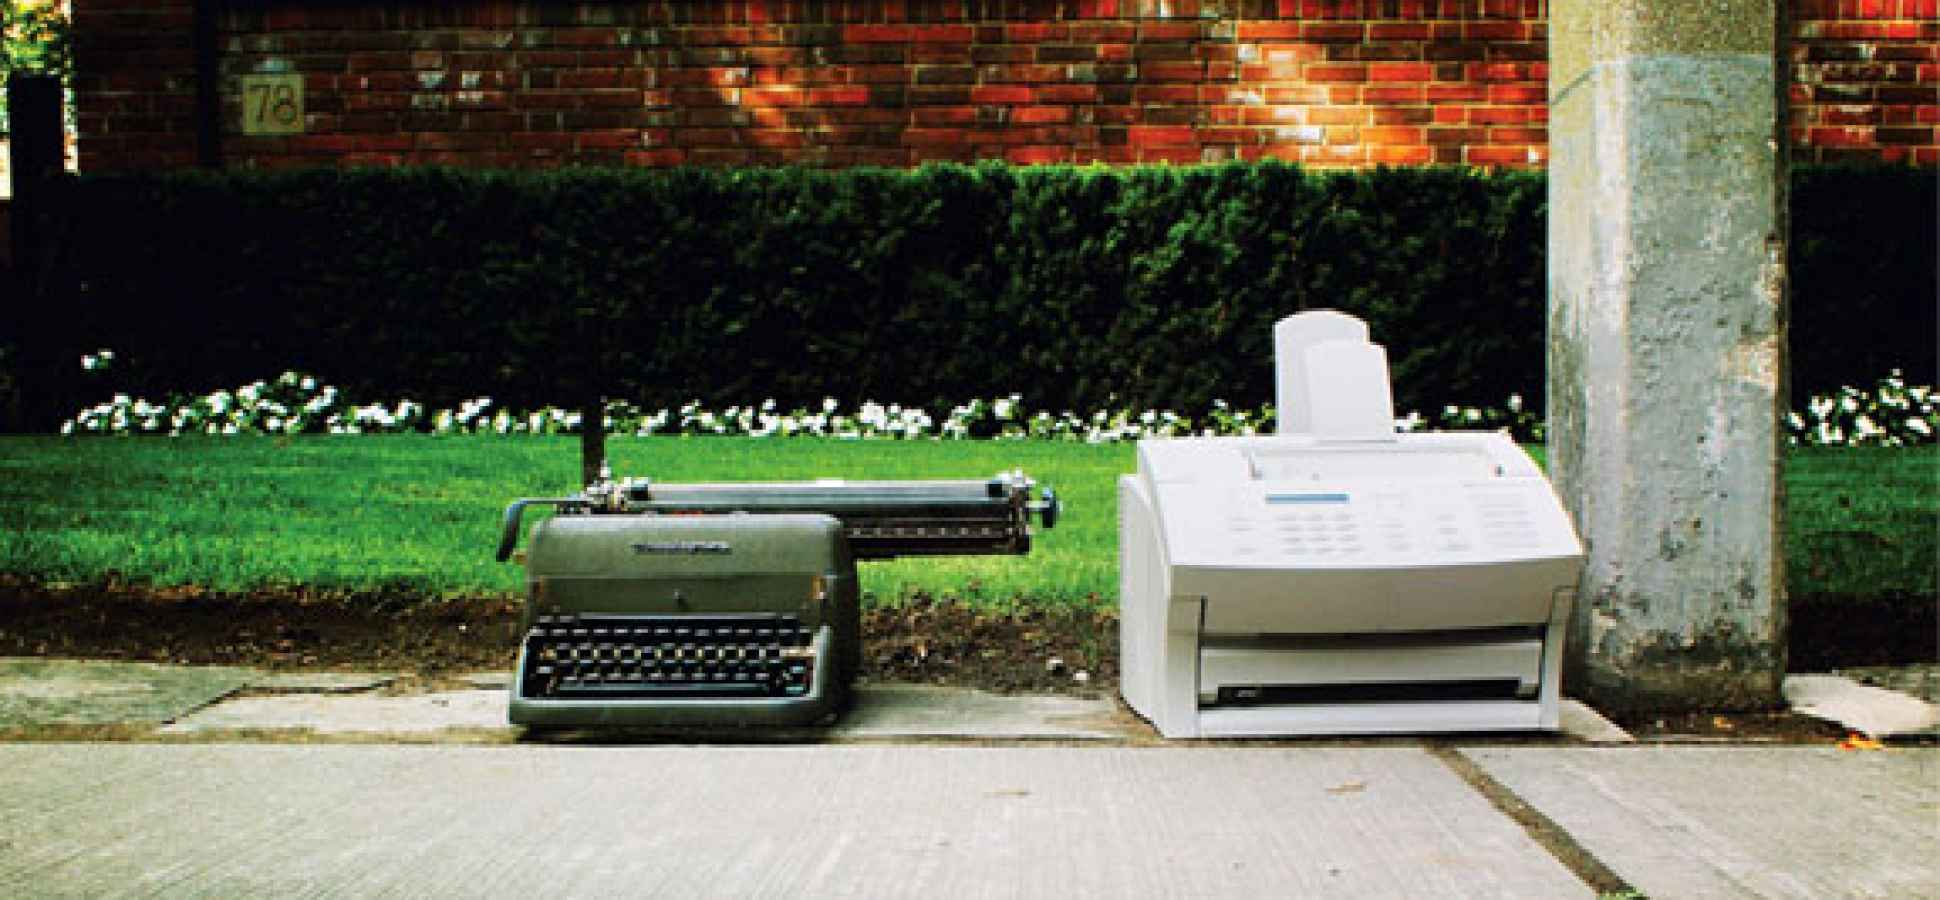 How to Fax Without Paper | Inc com